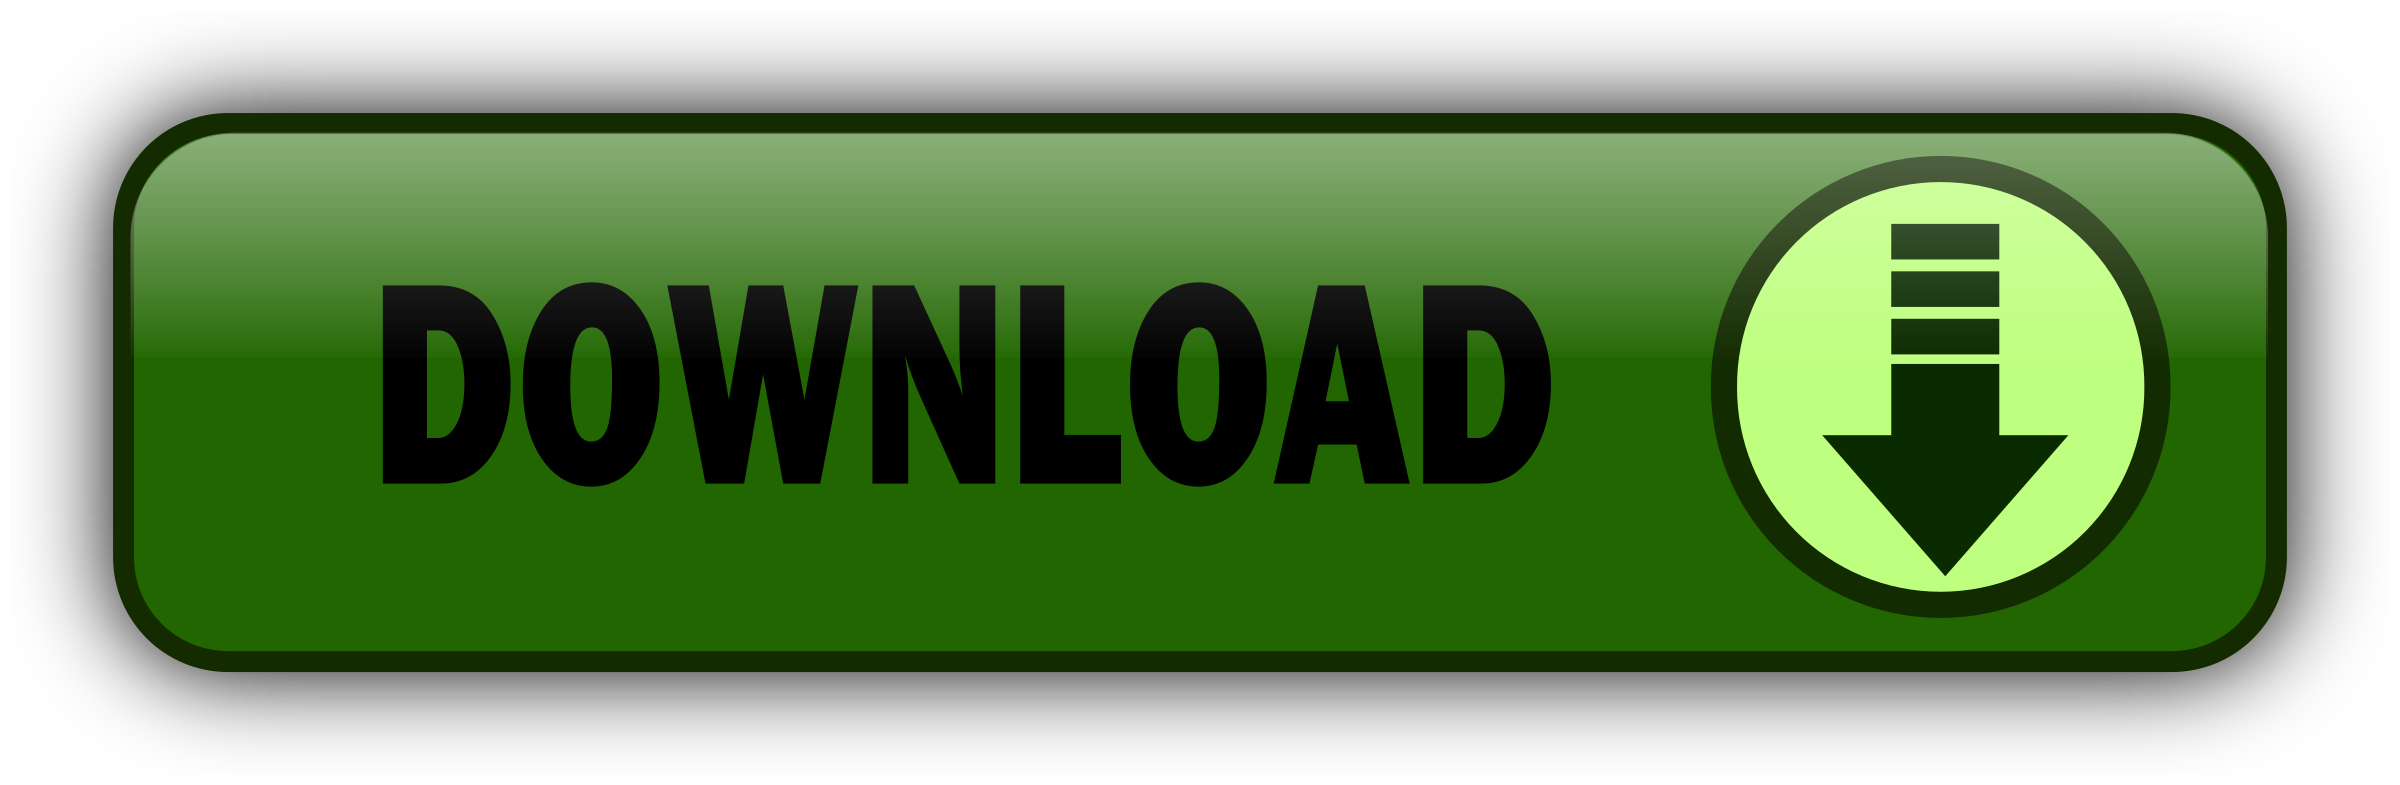 download cognitive behavior therapy for